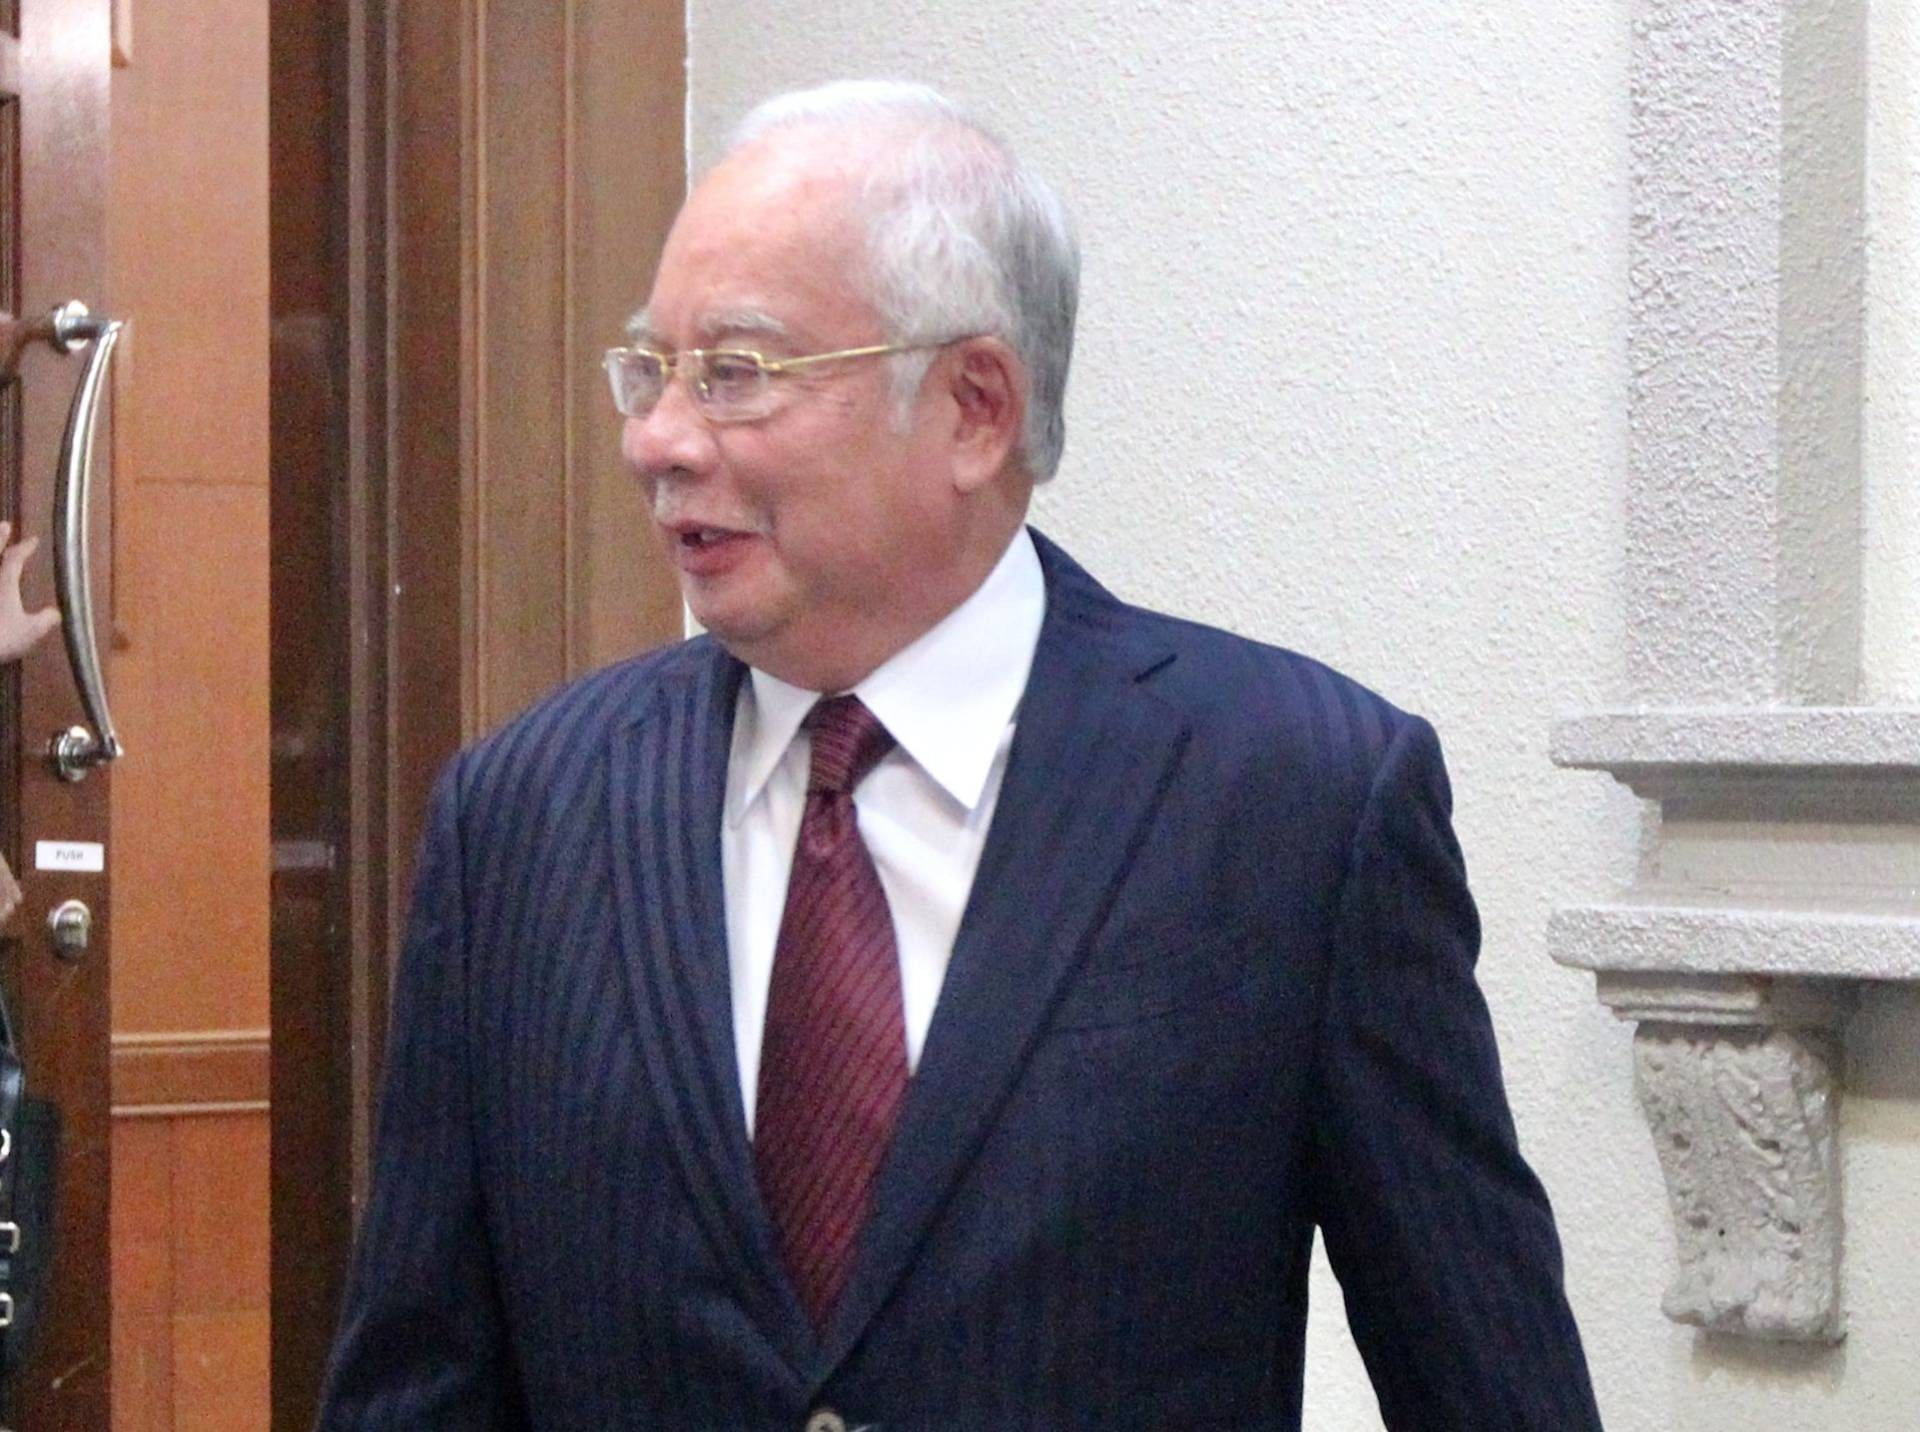 1MDB trial: I messaged Najib on his birthday, not to double-check on instructions, say witness